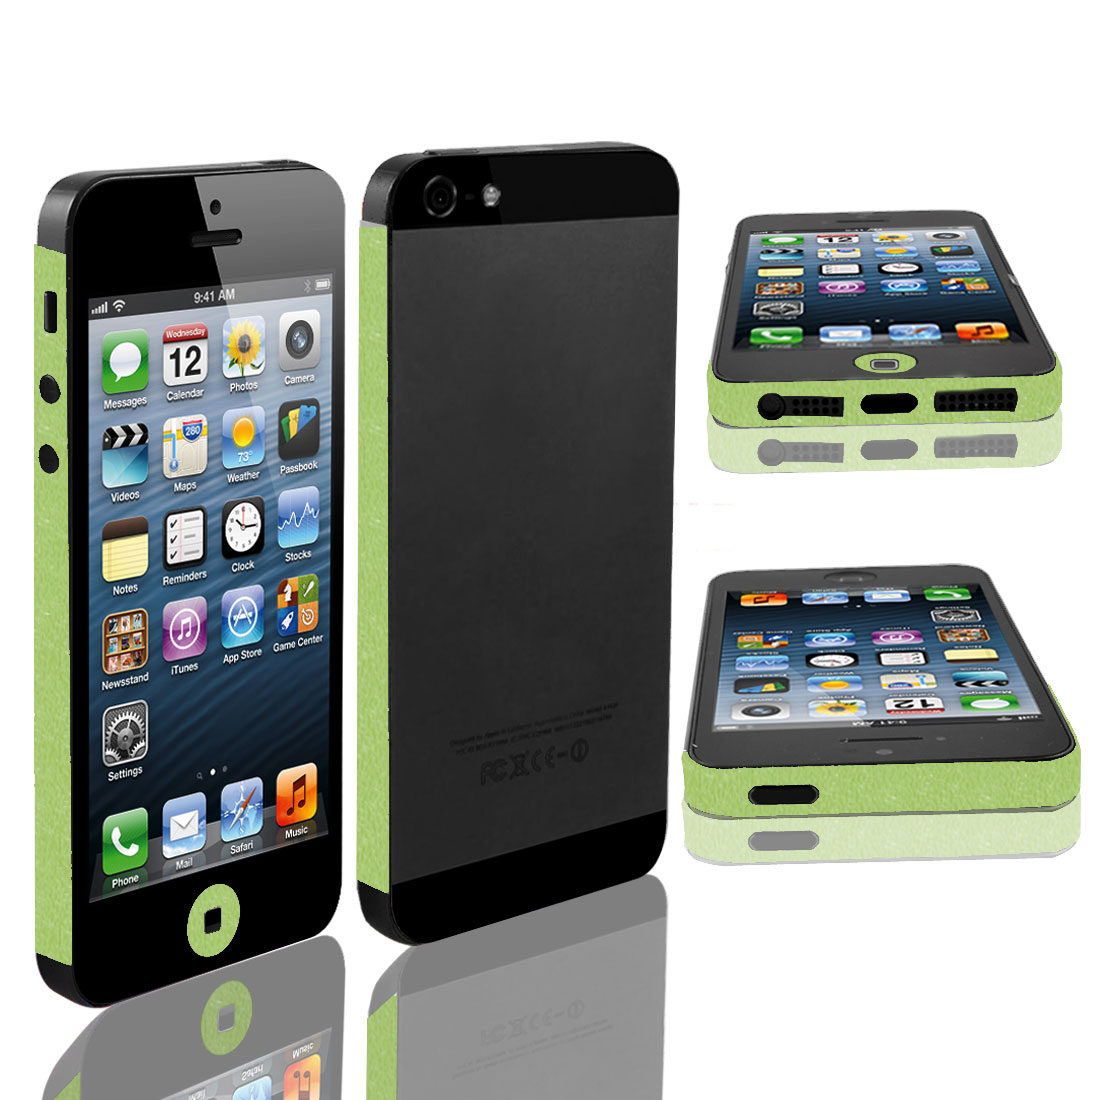 Self Adhesive Edge Wrap Decal Button Sticker Shield Green for iPhone 5 5G